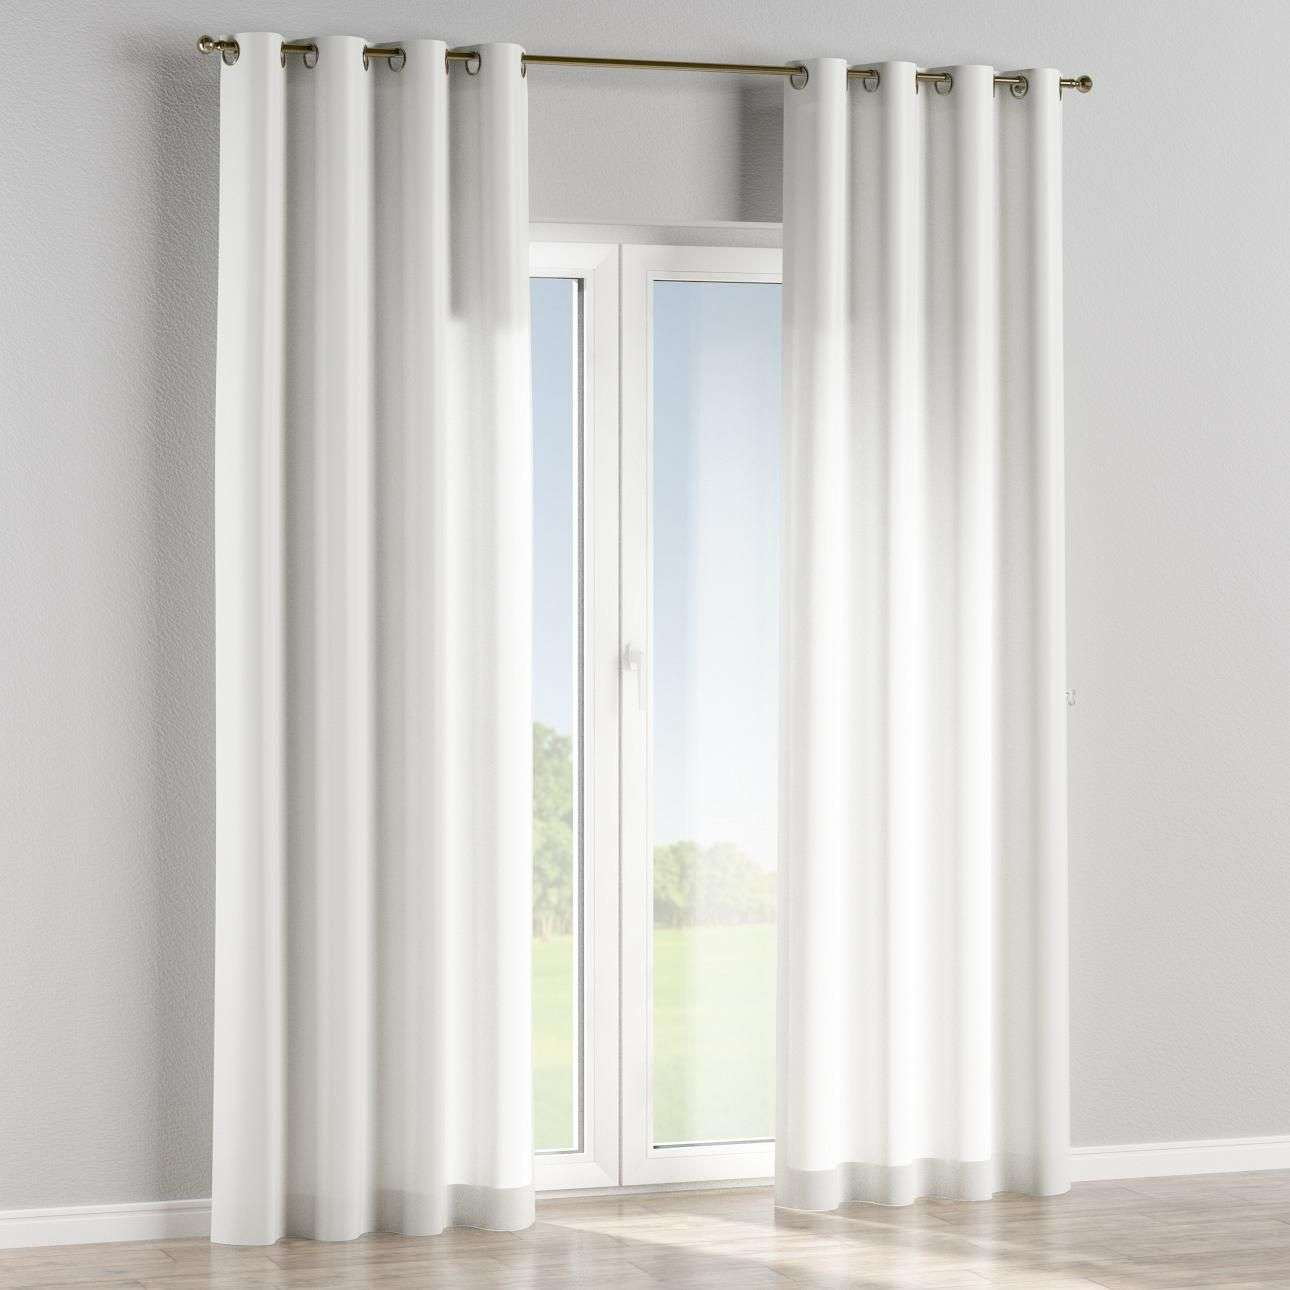 Eyelet lined curtains in collection Ashley, fabric: 137-45